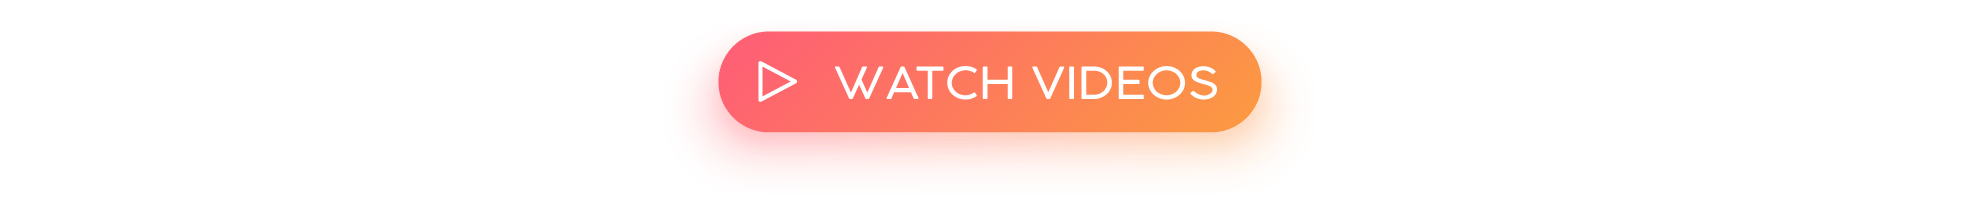 Watch videos call to action button